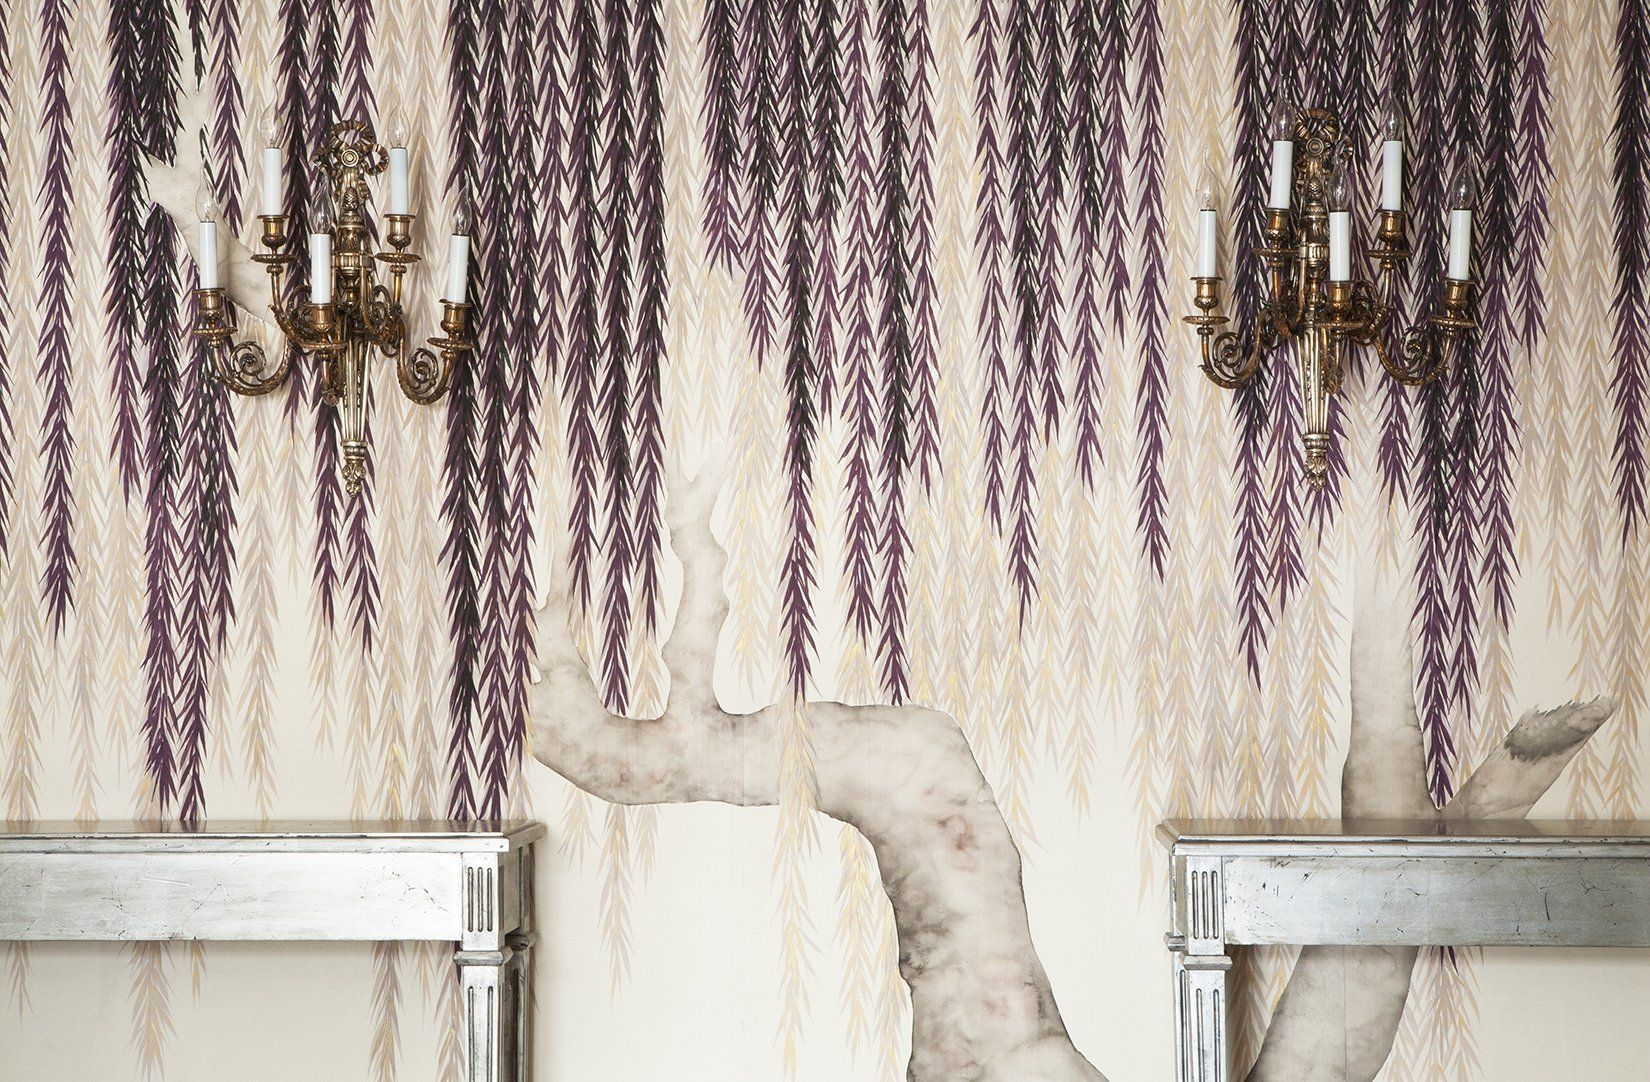 Amazing In Stunning, Full Wall Glory, De Gournayu0027s Hand Painted Wallcoverings  Completely Captivate The Eye And The Imagination. Shown Here Is Willow, In  The Argent ...